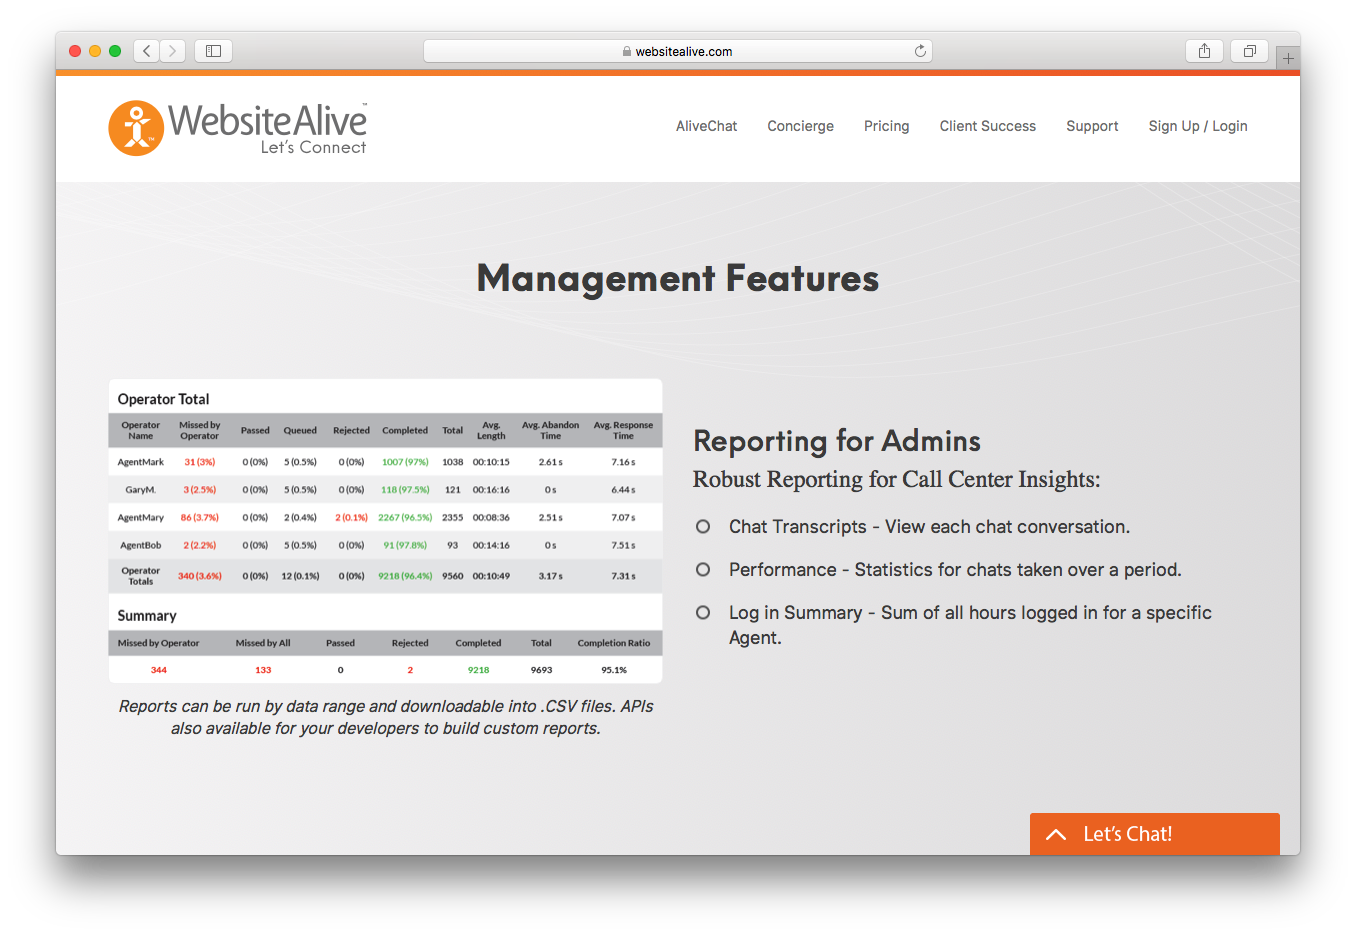 Websitealive management reporting admins chat transcripts performance